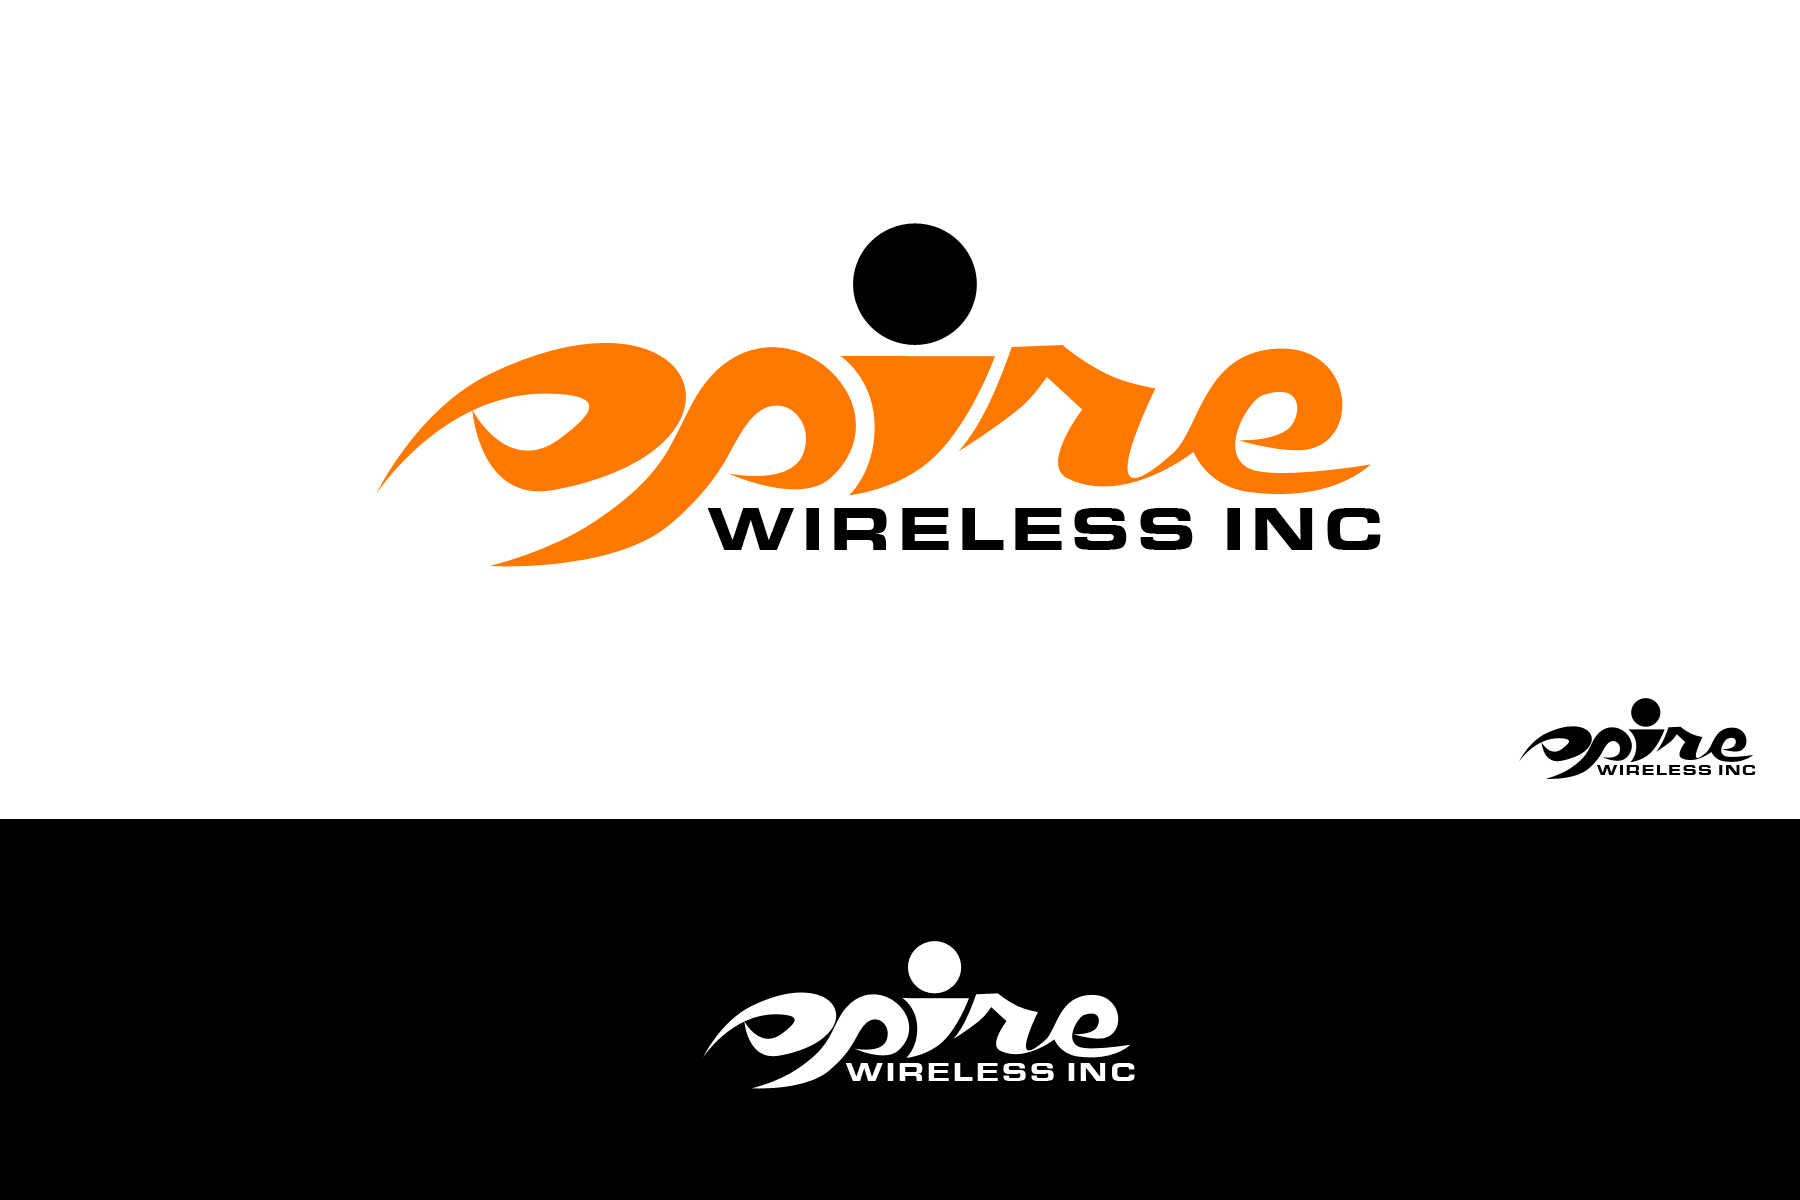 Logo Design by Abraham Romanillos - Entry No. 62 in the Logo Design Contest Logo Design for Spire Wireless Inc.